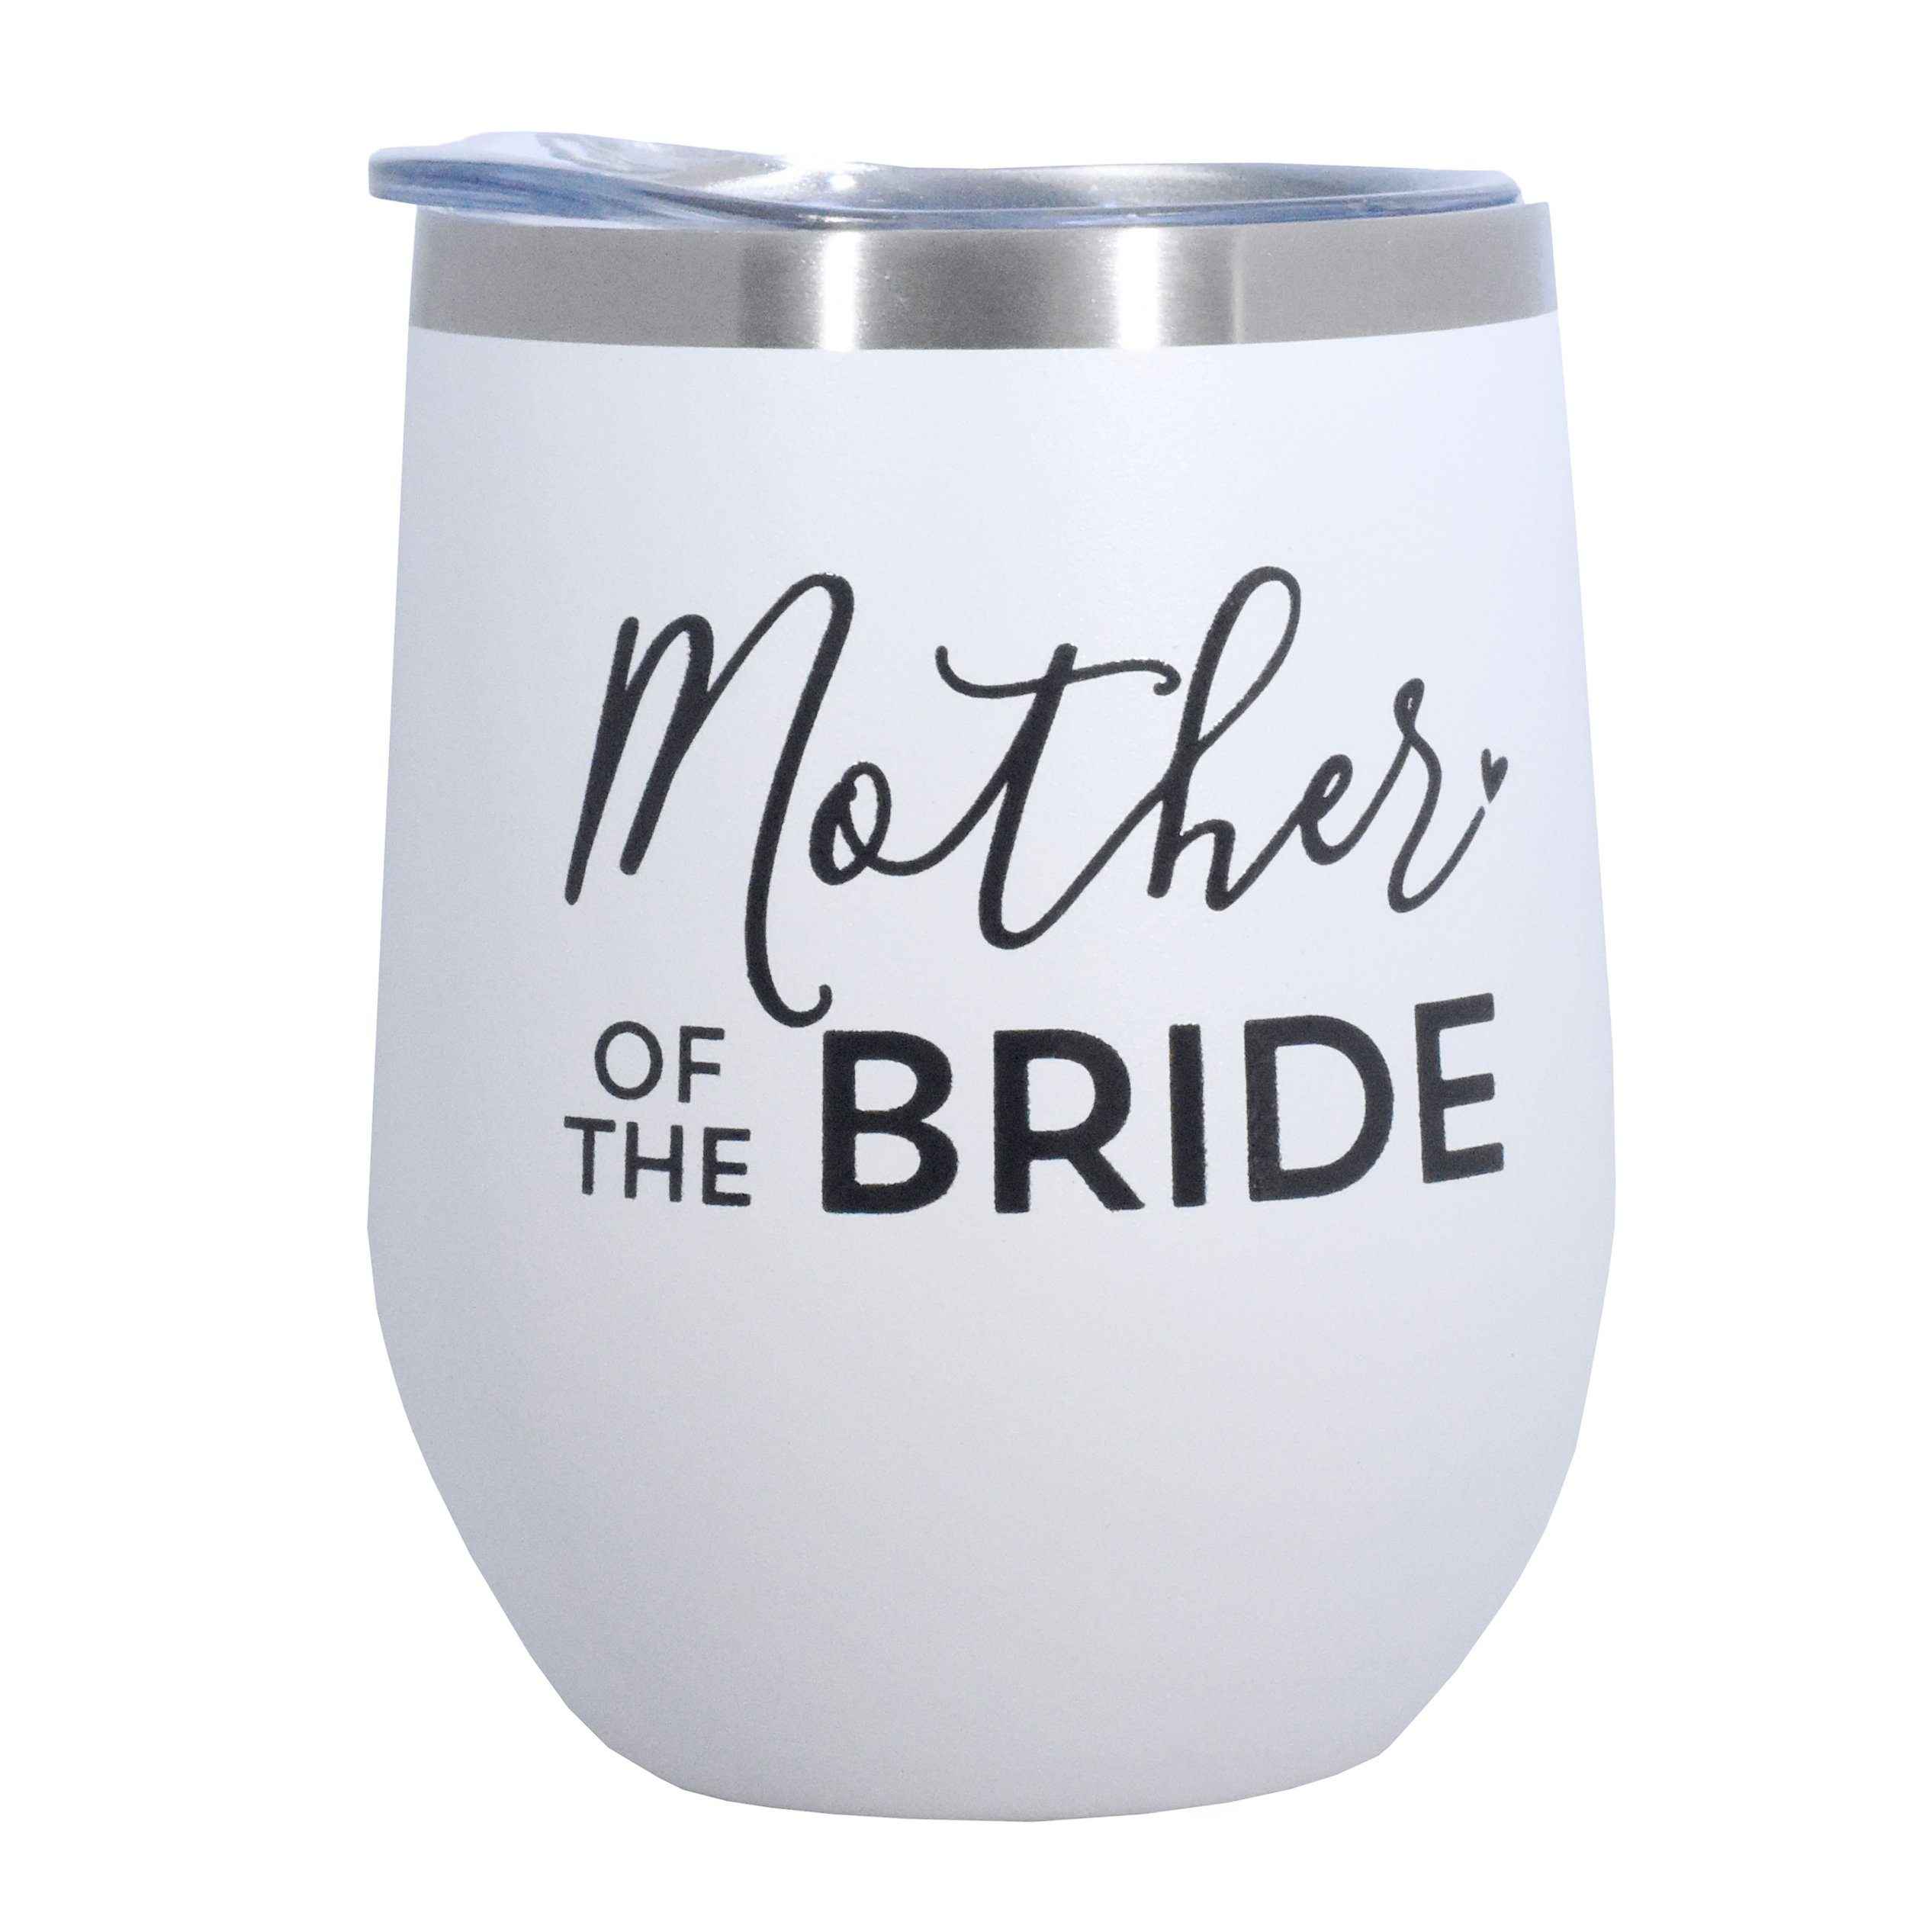 Mother Of The Bride - 12 oz Stainless Steel Wine Tumbler with Lid - (White with Black Imprint)